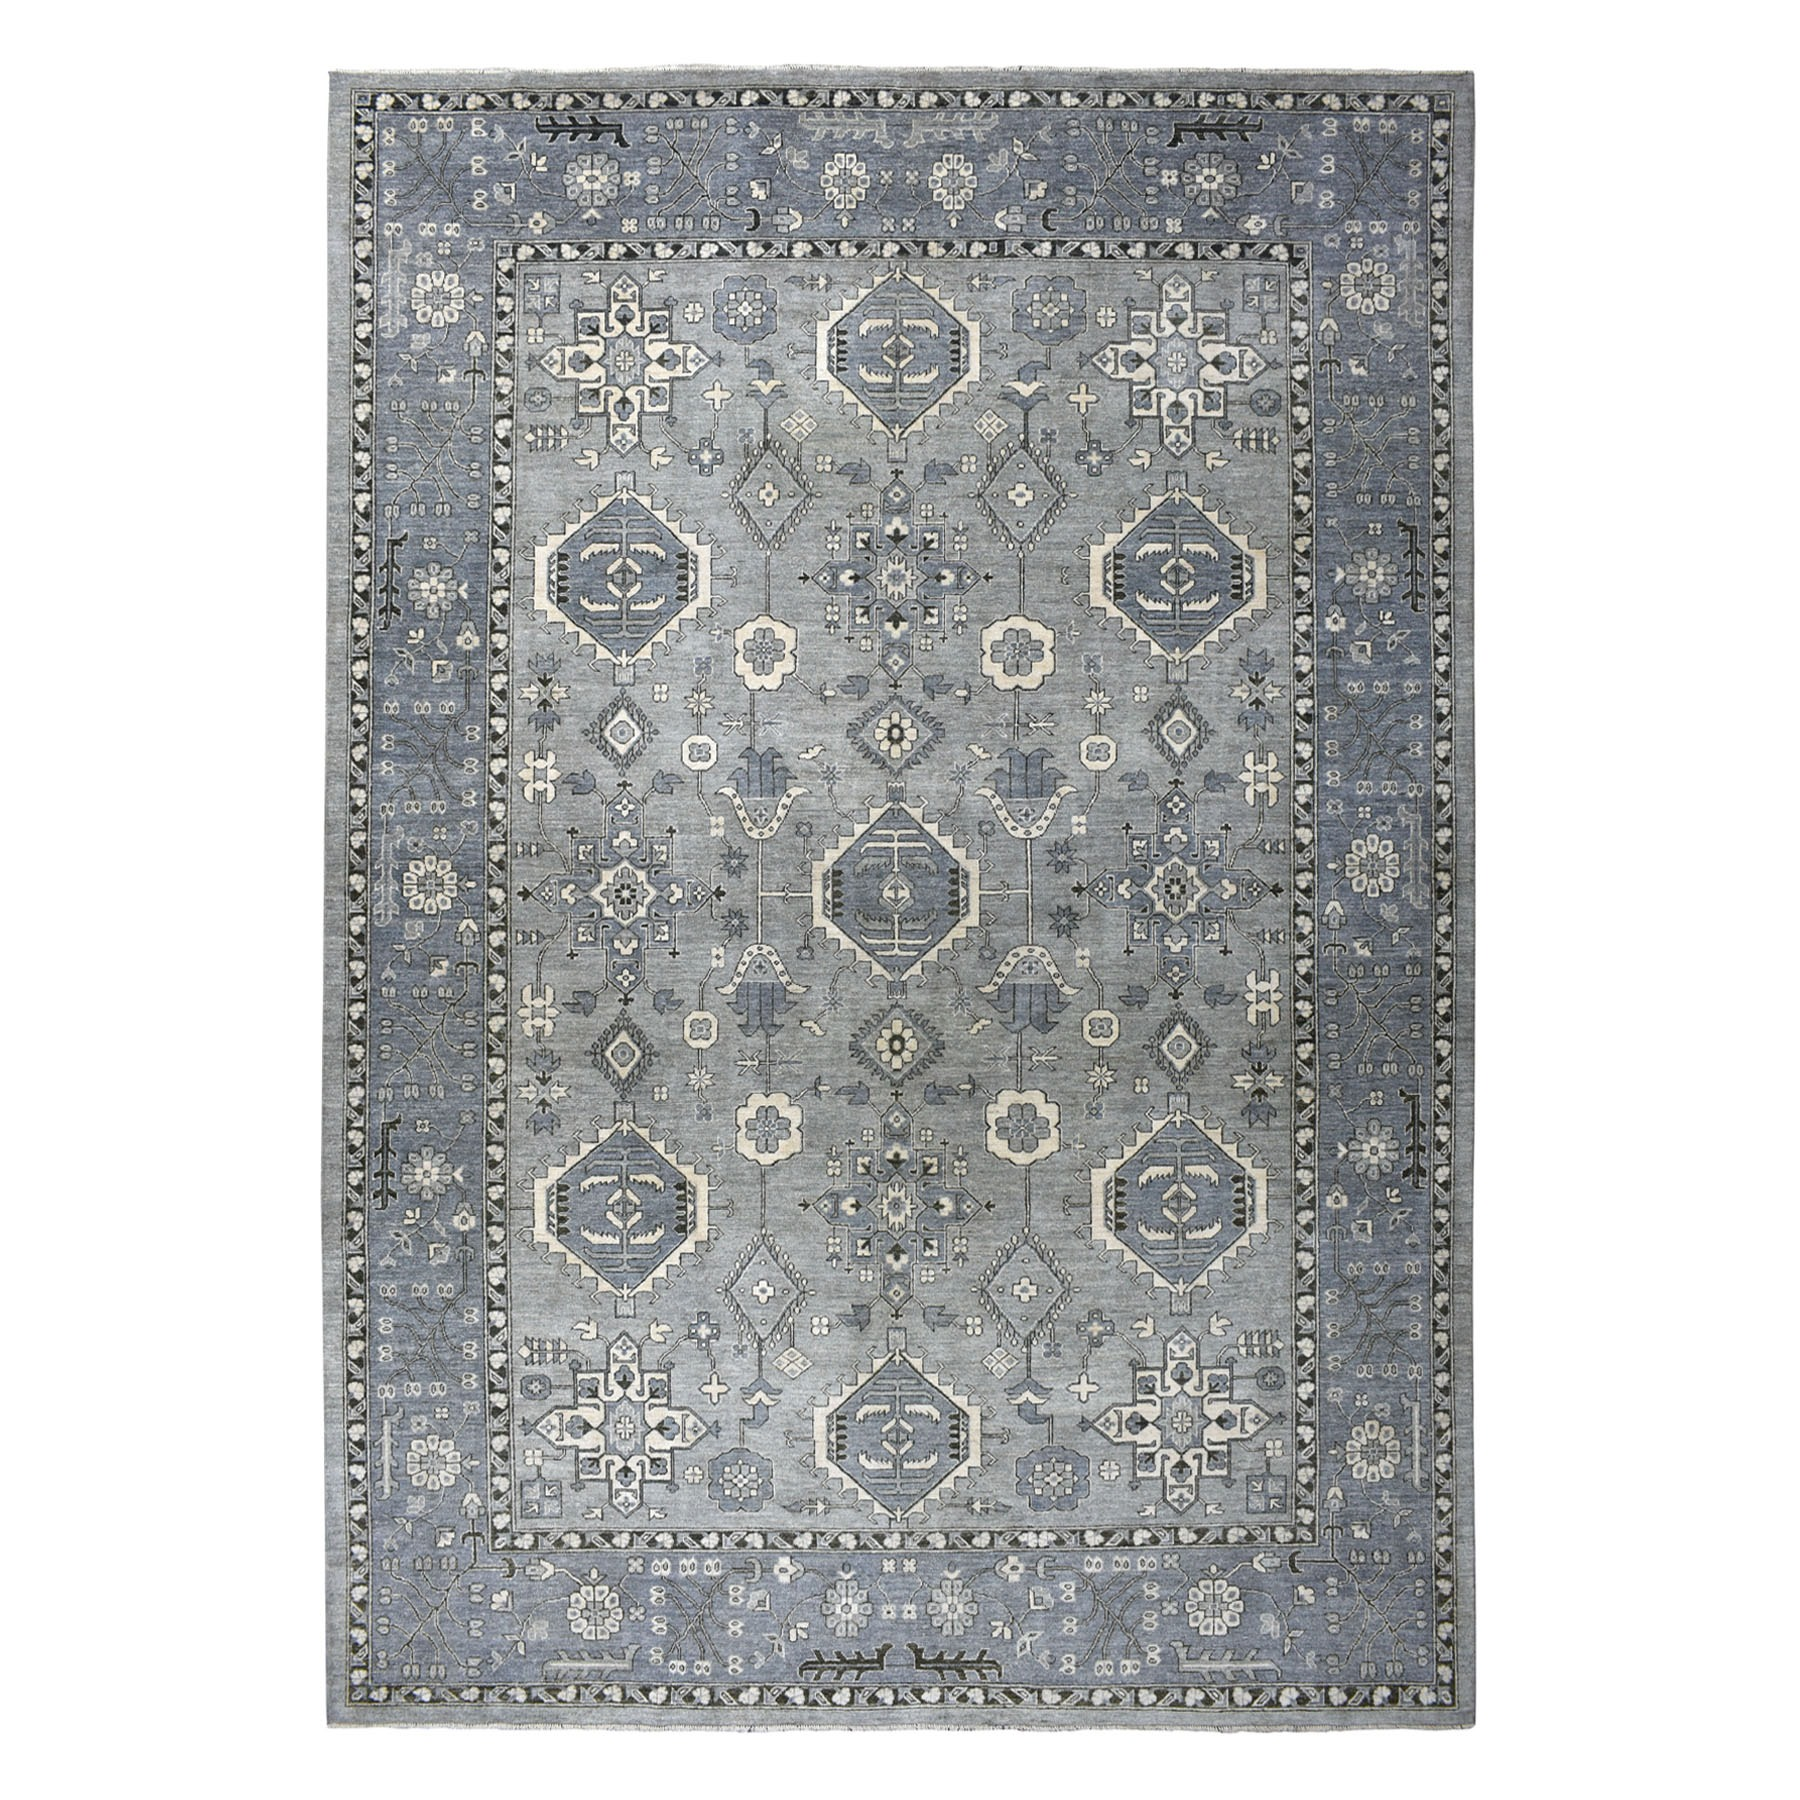 """10'x13'10"""" Gray Pure Wool Hand-Knotted Peshawar With Karajeh Design Oriental Rug"""